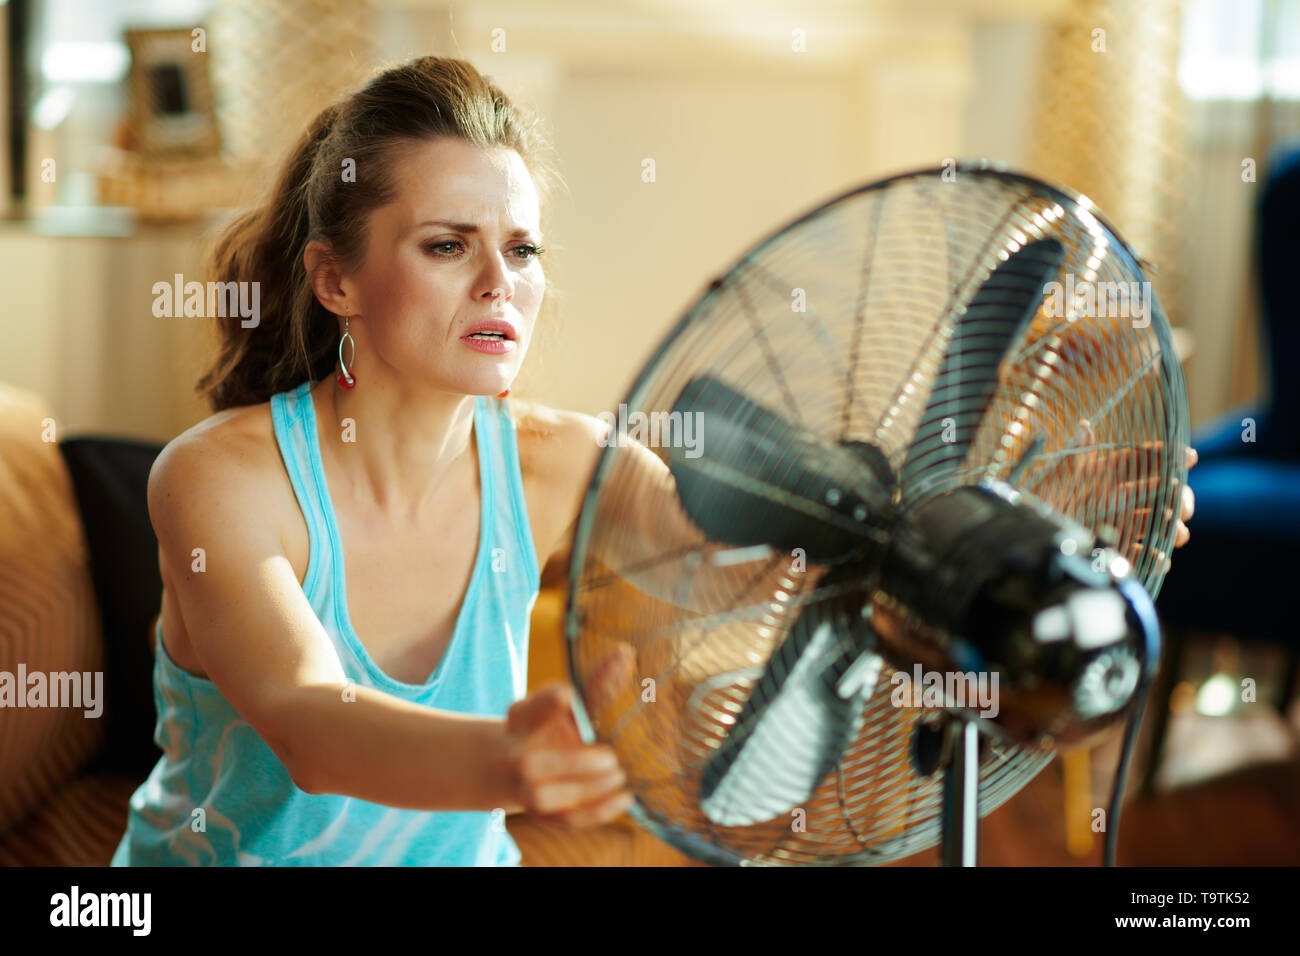 hot housewife in the modern living room in sunny hot summer day showing victory gesture suffering from summer heat. - Stock Image